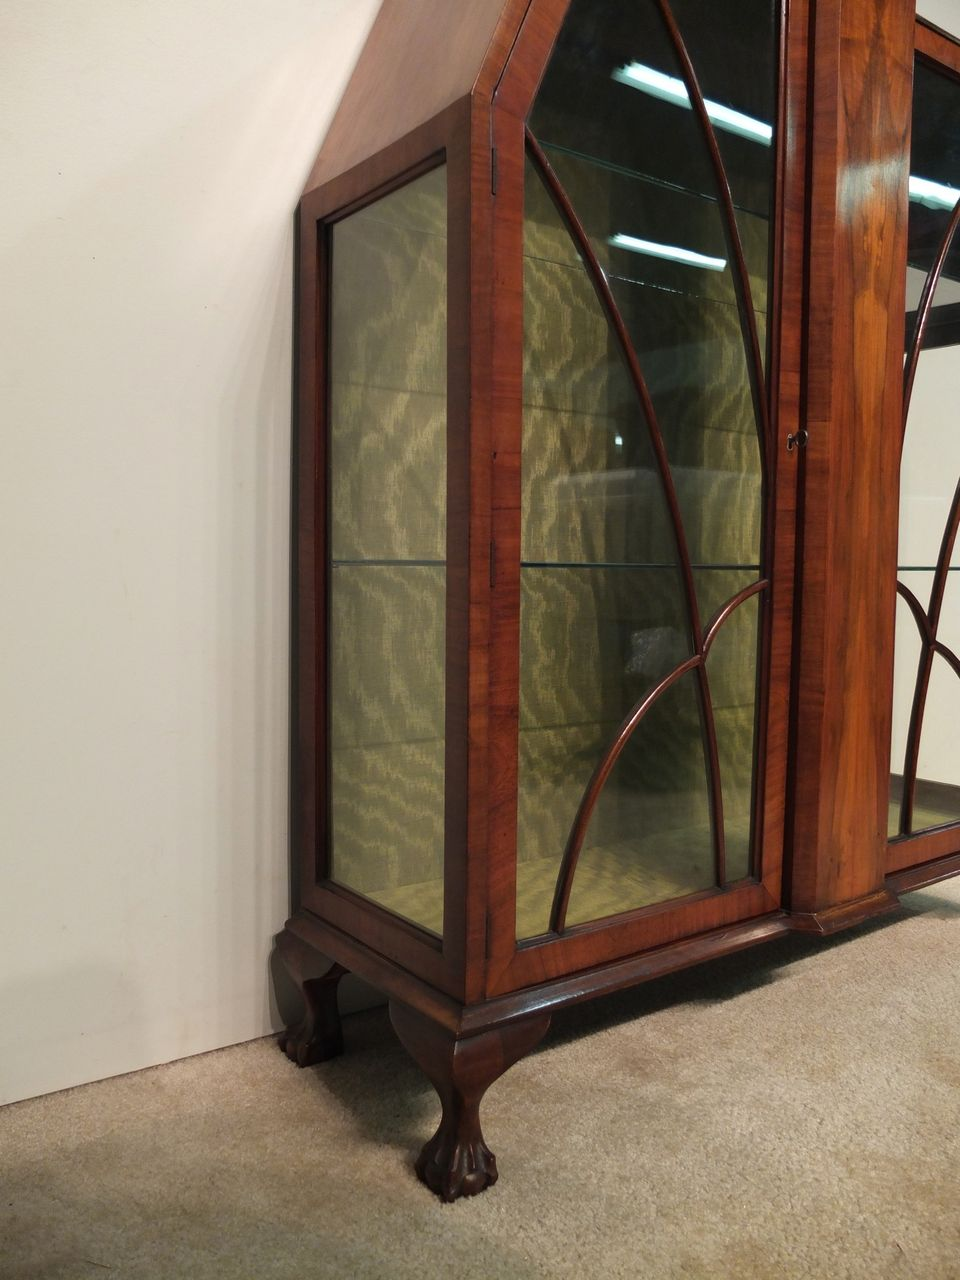 Art deco display cabinet or vitrine from ofleury on ruby lane for Sideboard vitrine